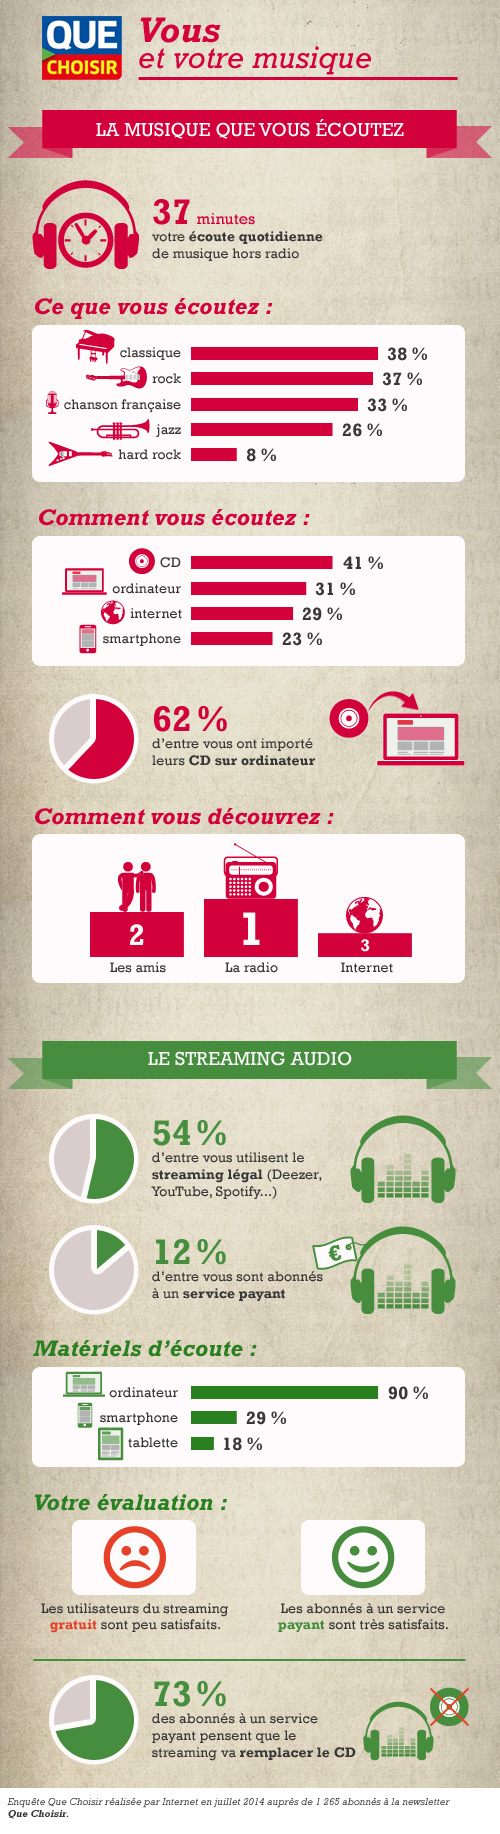 infographie-musique-et-streaming